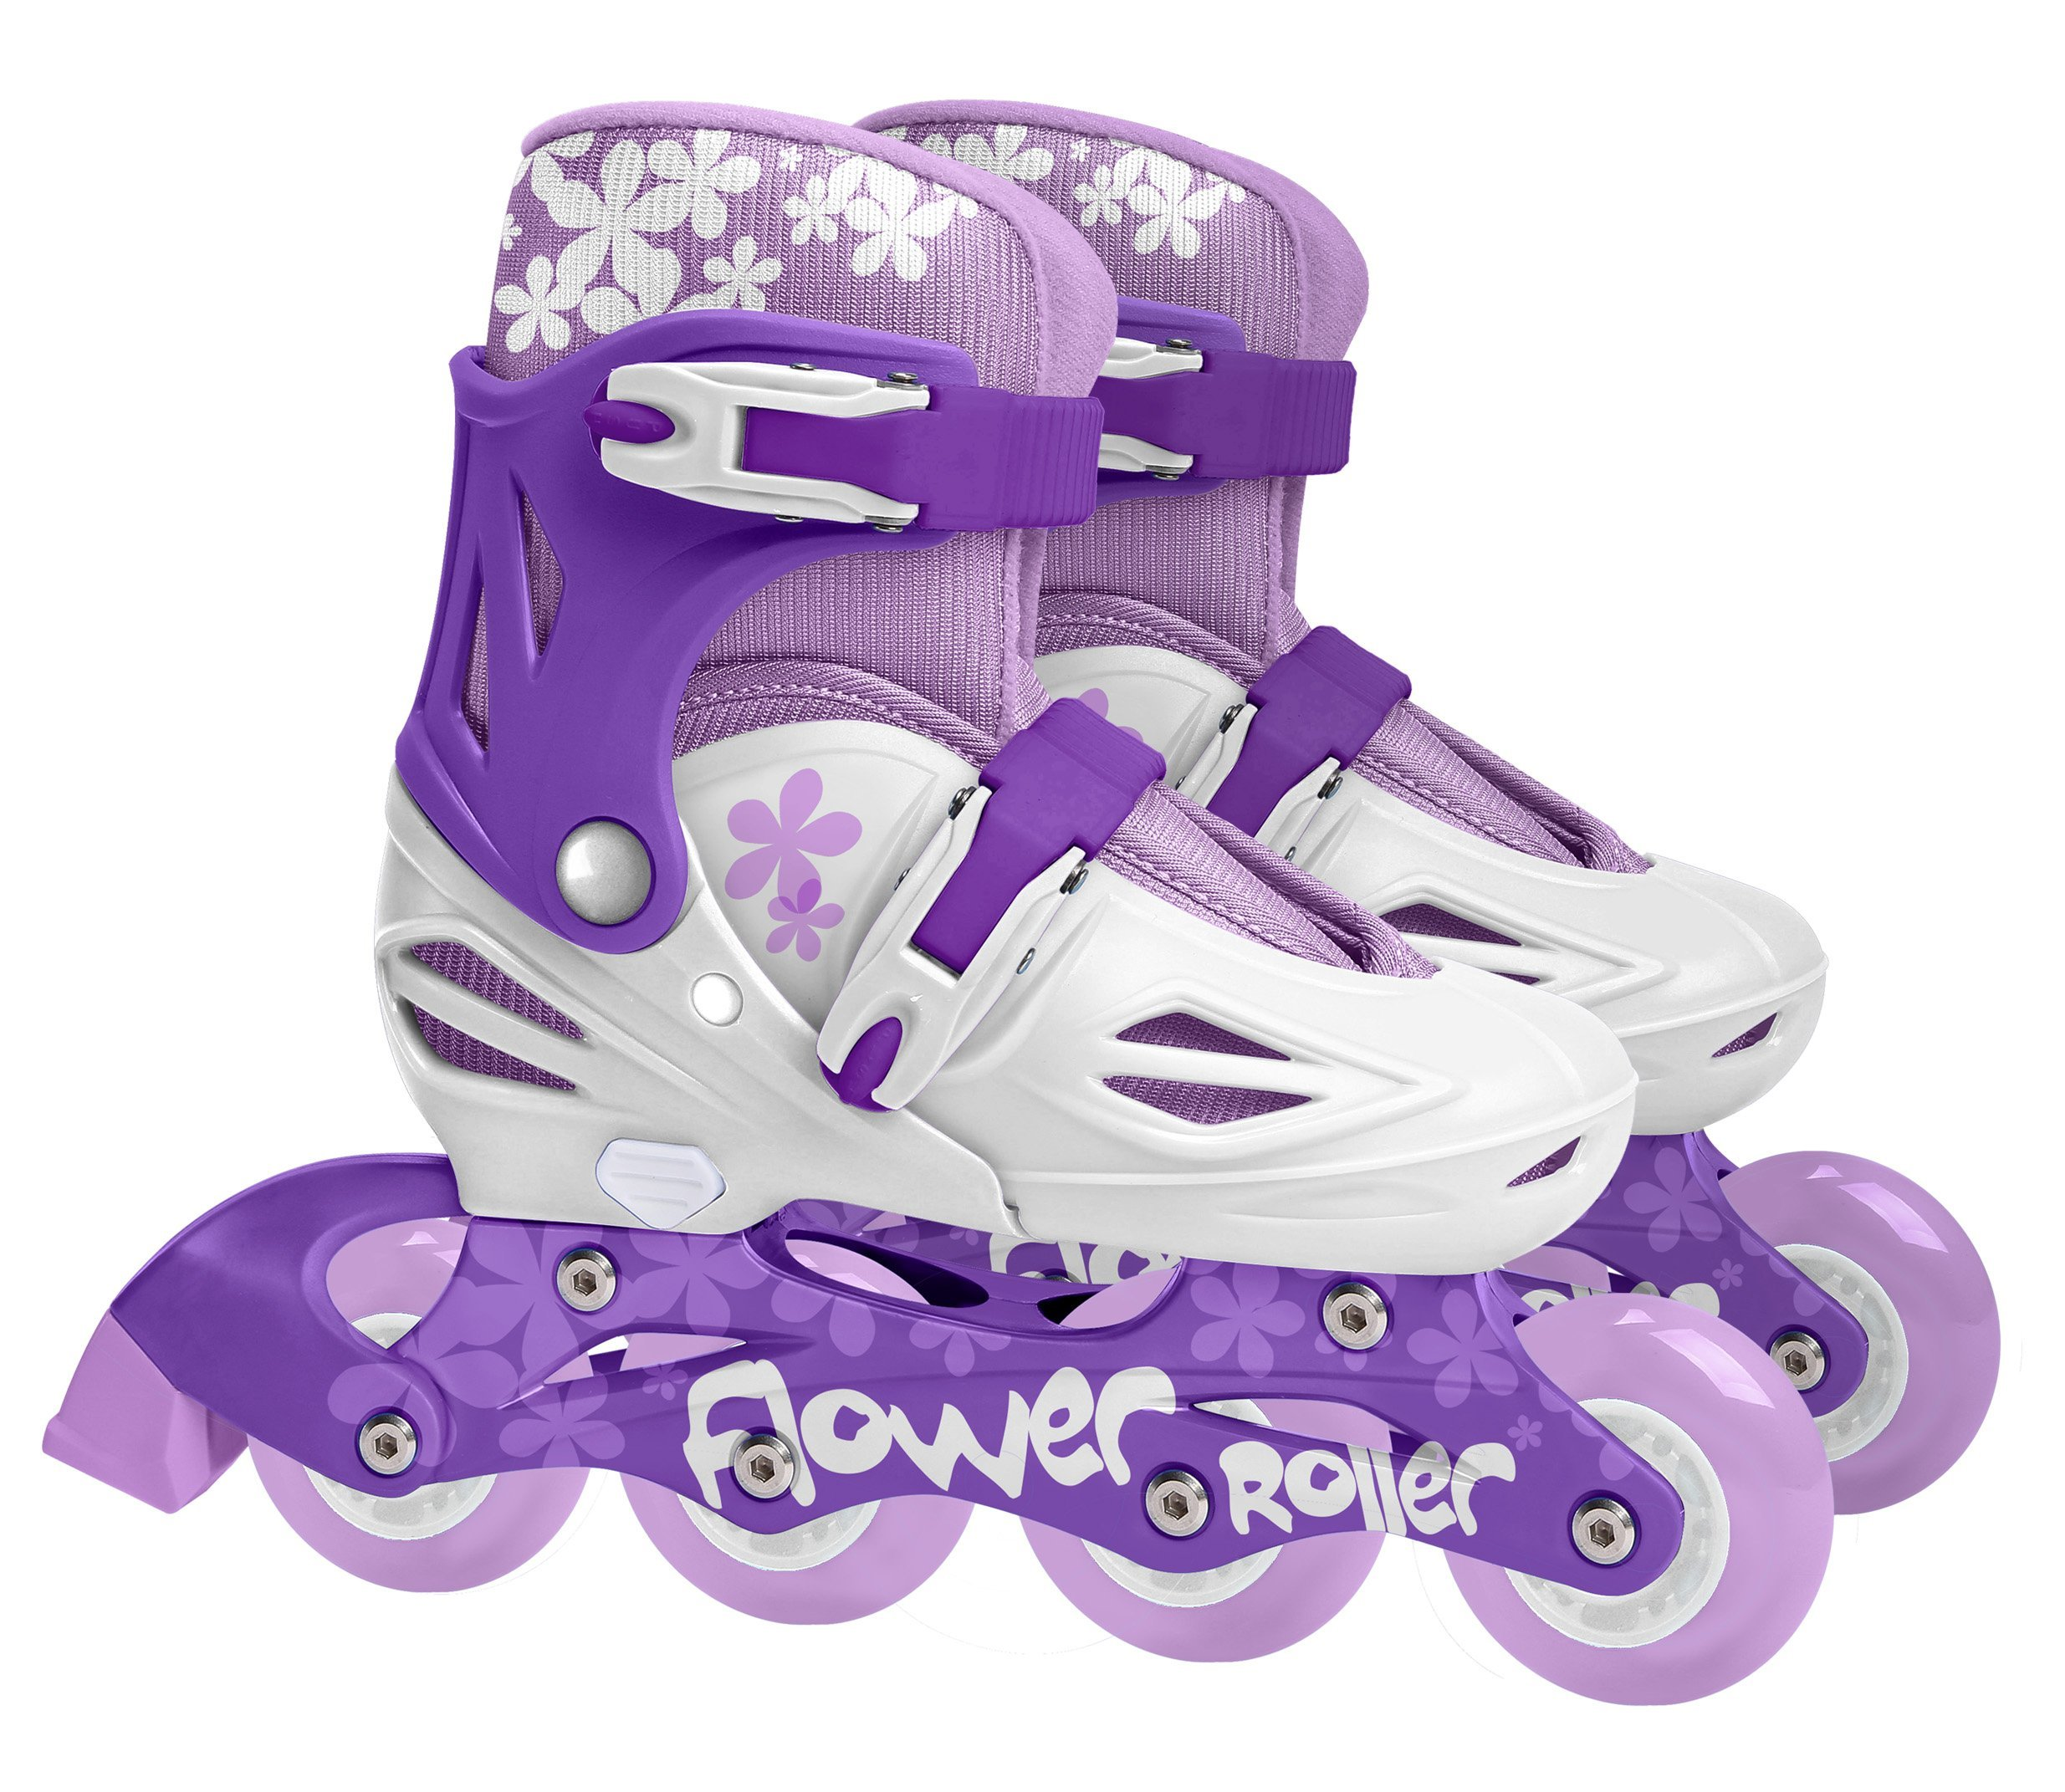 Stamp - Jb130130 - in Lines Skates pour Fille product image